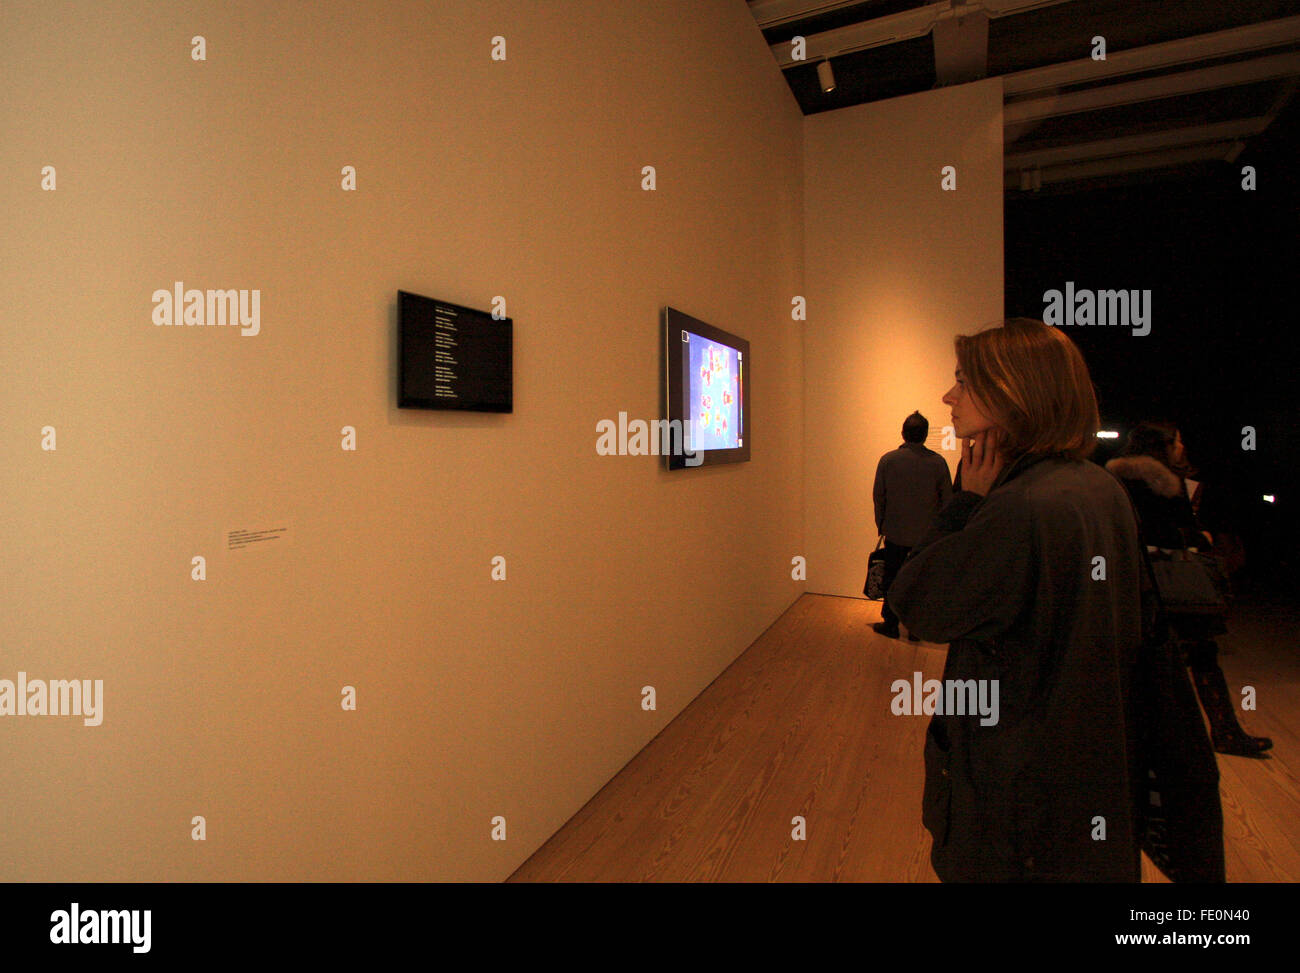 New York City, NY, USA. 3rd February, 2016. Visitors look at a display of data sniffed from their own cellphones, - Stock Image